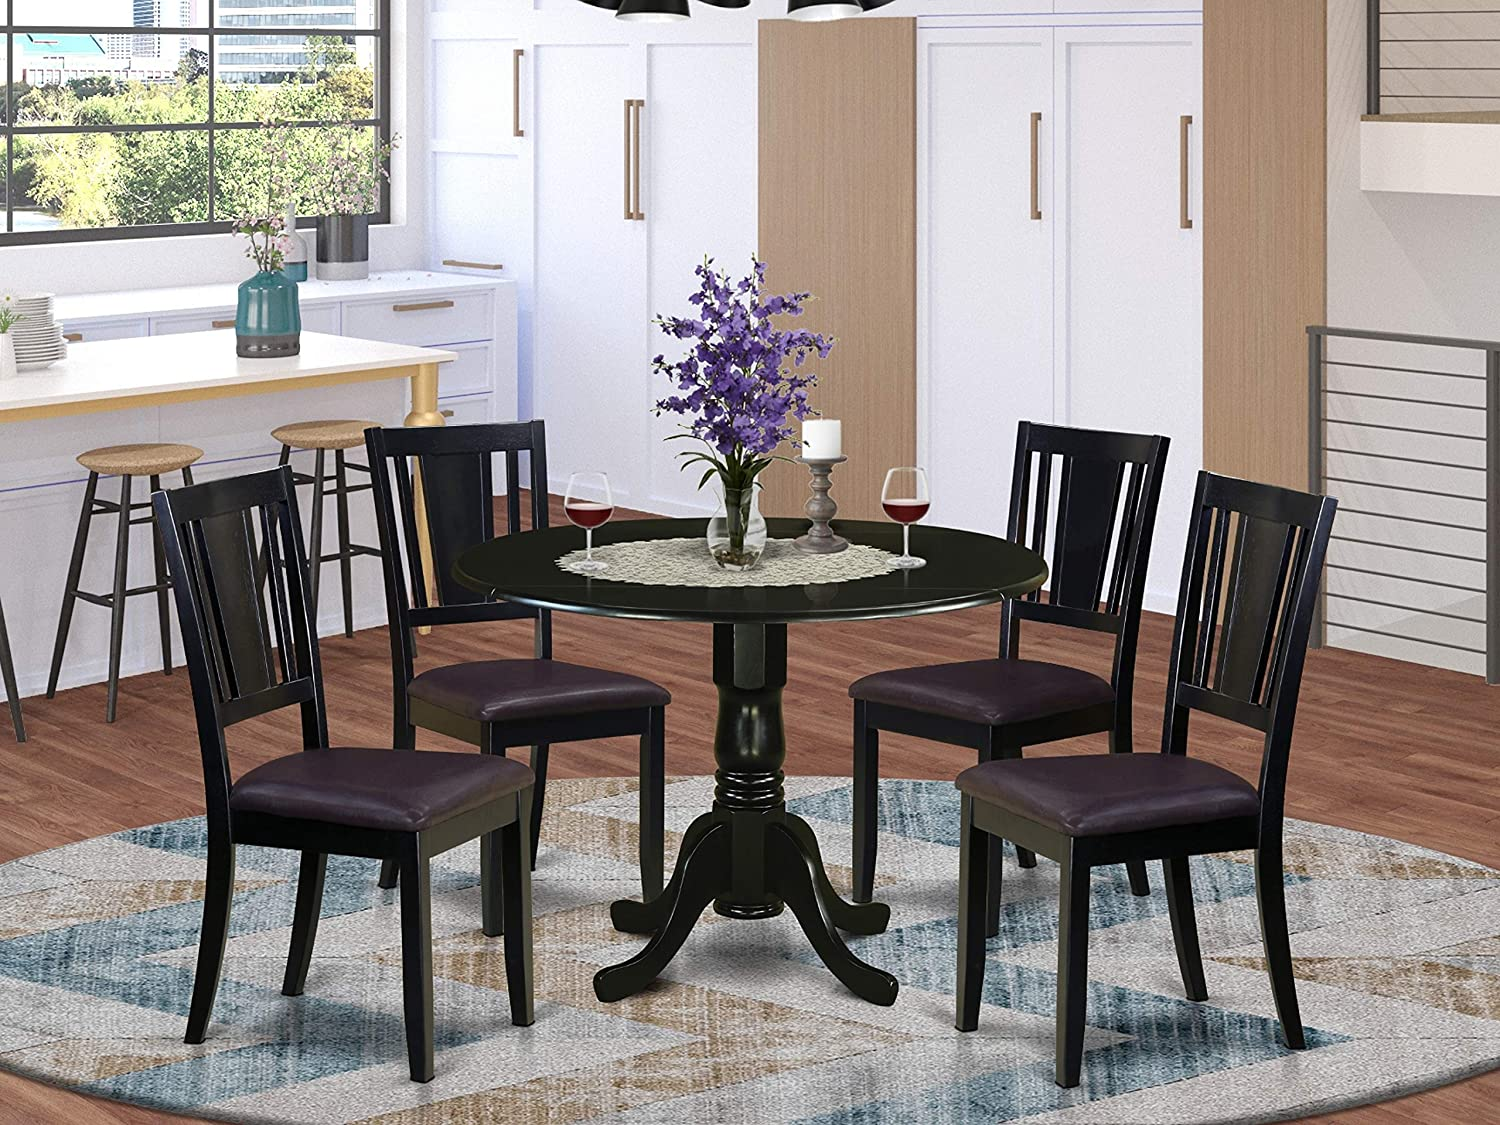 East West Furniture 5-Pieces Dining Set PU Leather modern dining chairs - Black Finish Hardwood Two 9-Inch Drop Leaves Pedestal Small Dining Table and Frame